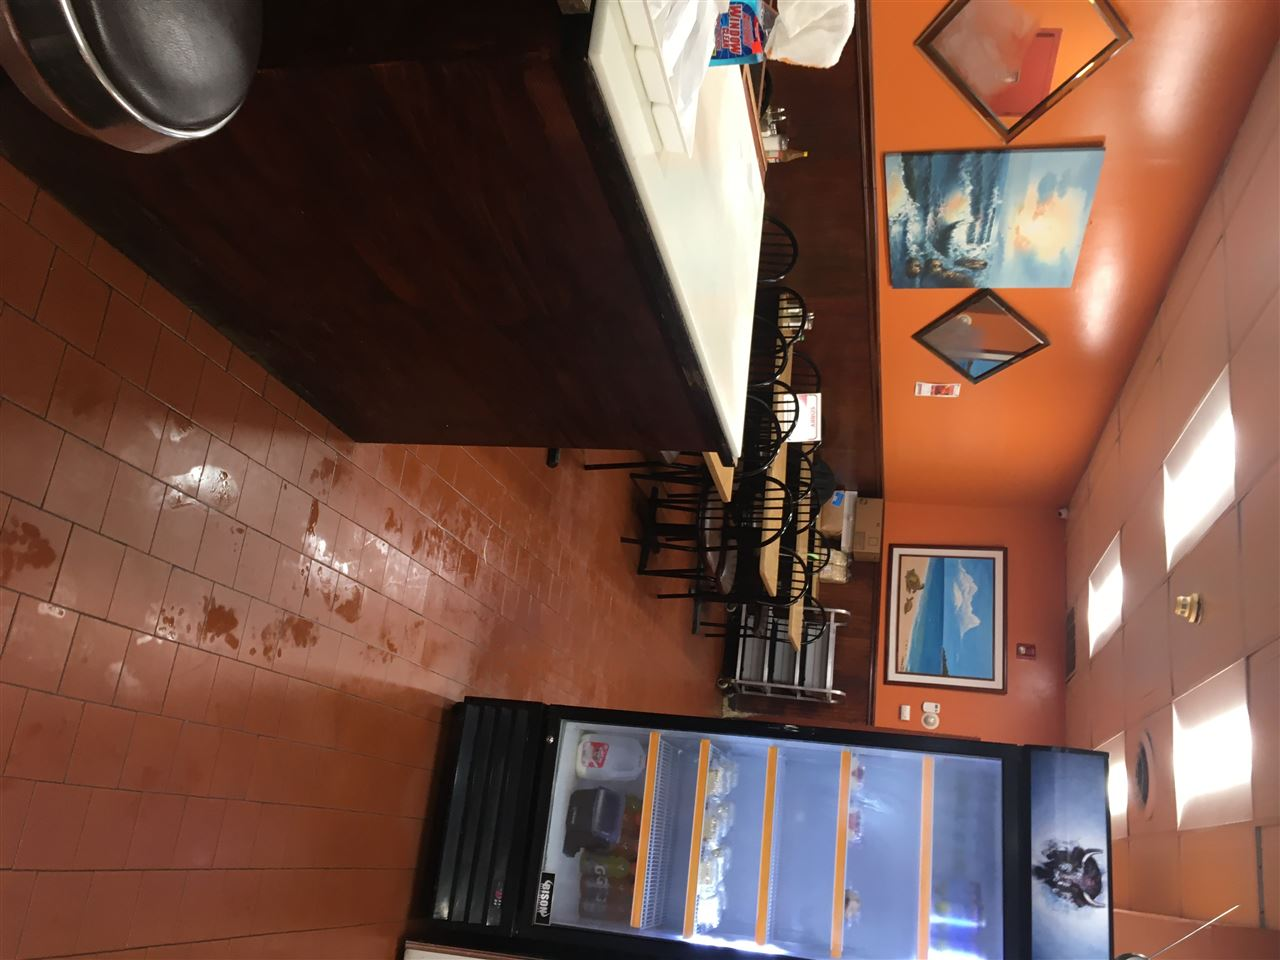 384 CENTRAL AVE, JC, Heights, NJ 07307